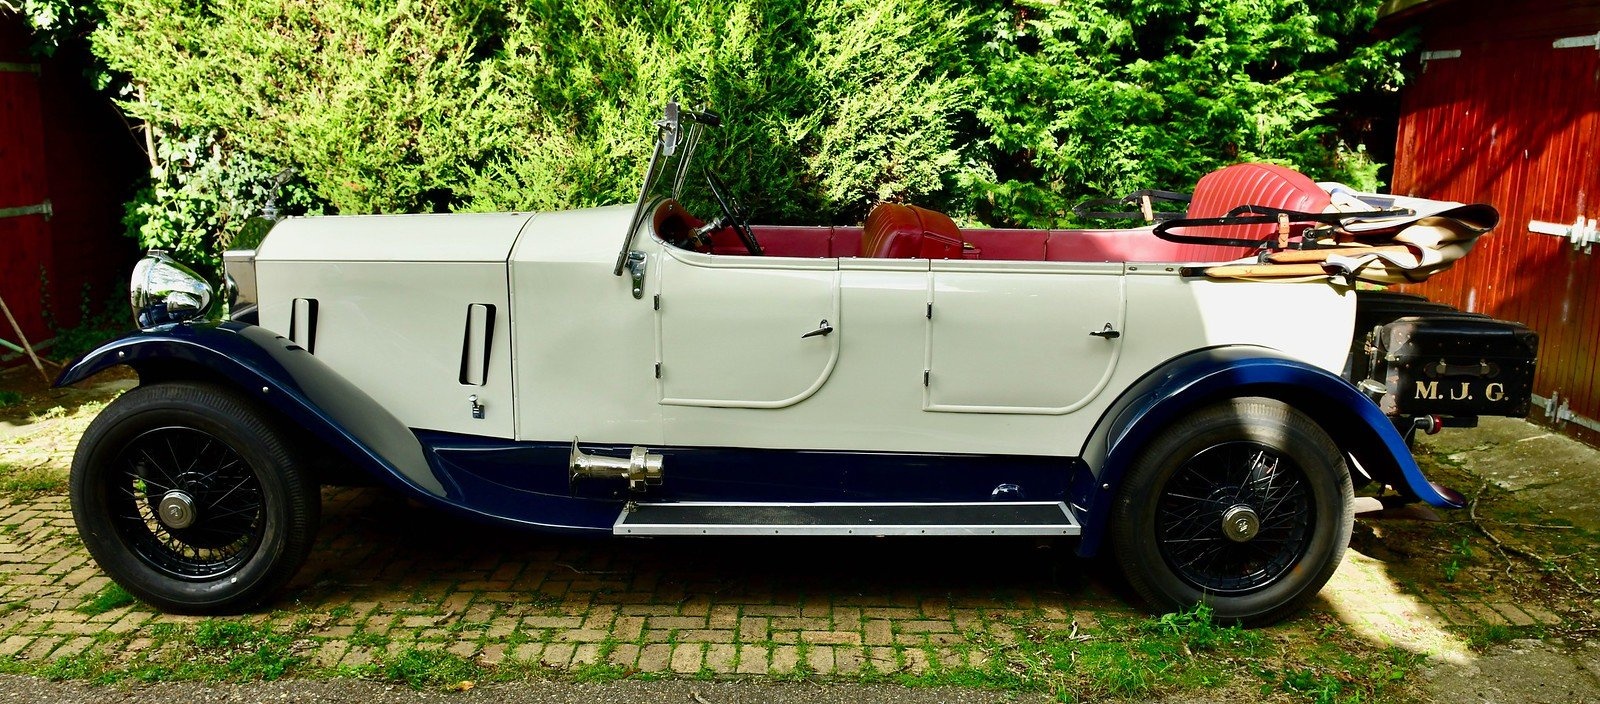 1936 Rolls Royce 25/30 Barrel sided tourer For Sale (picture 2 of 6)